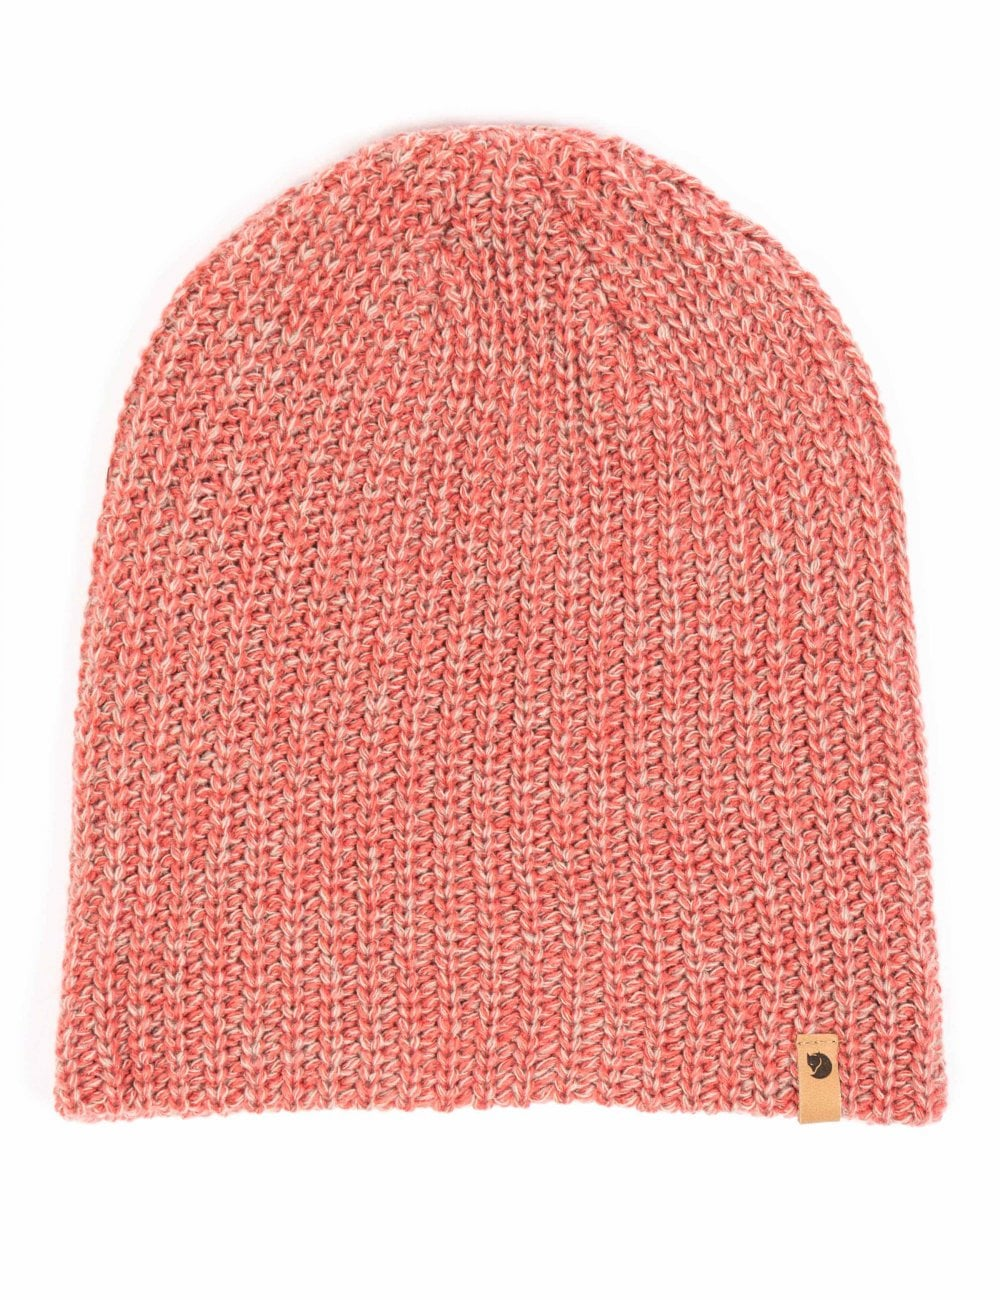 4d54acb1331 Fjallraven Ovik Melange Beanie Hat - Dahlia - Accessories from Fat Buddha  Store UK